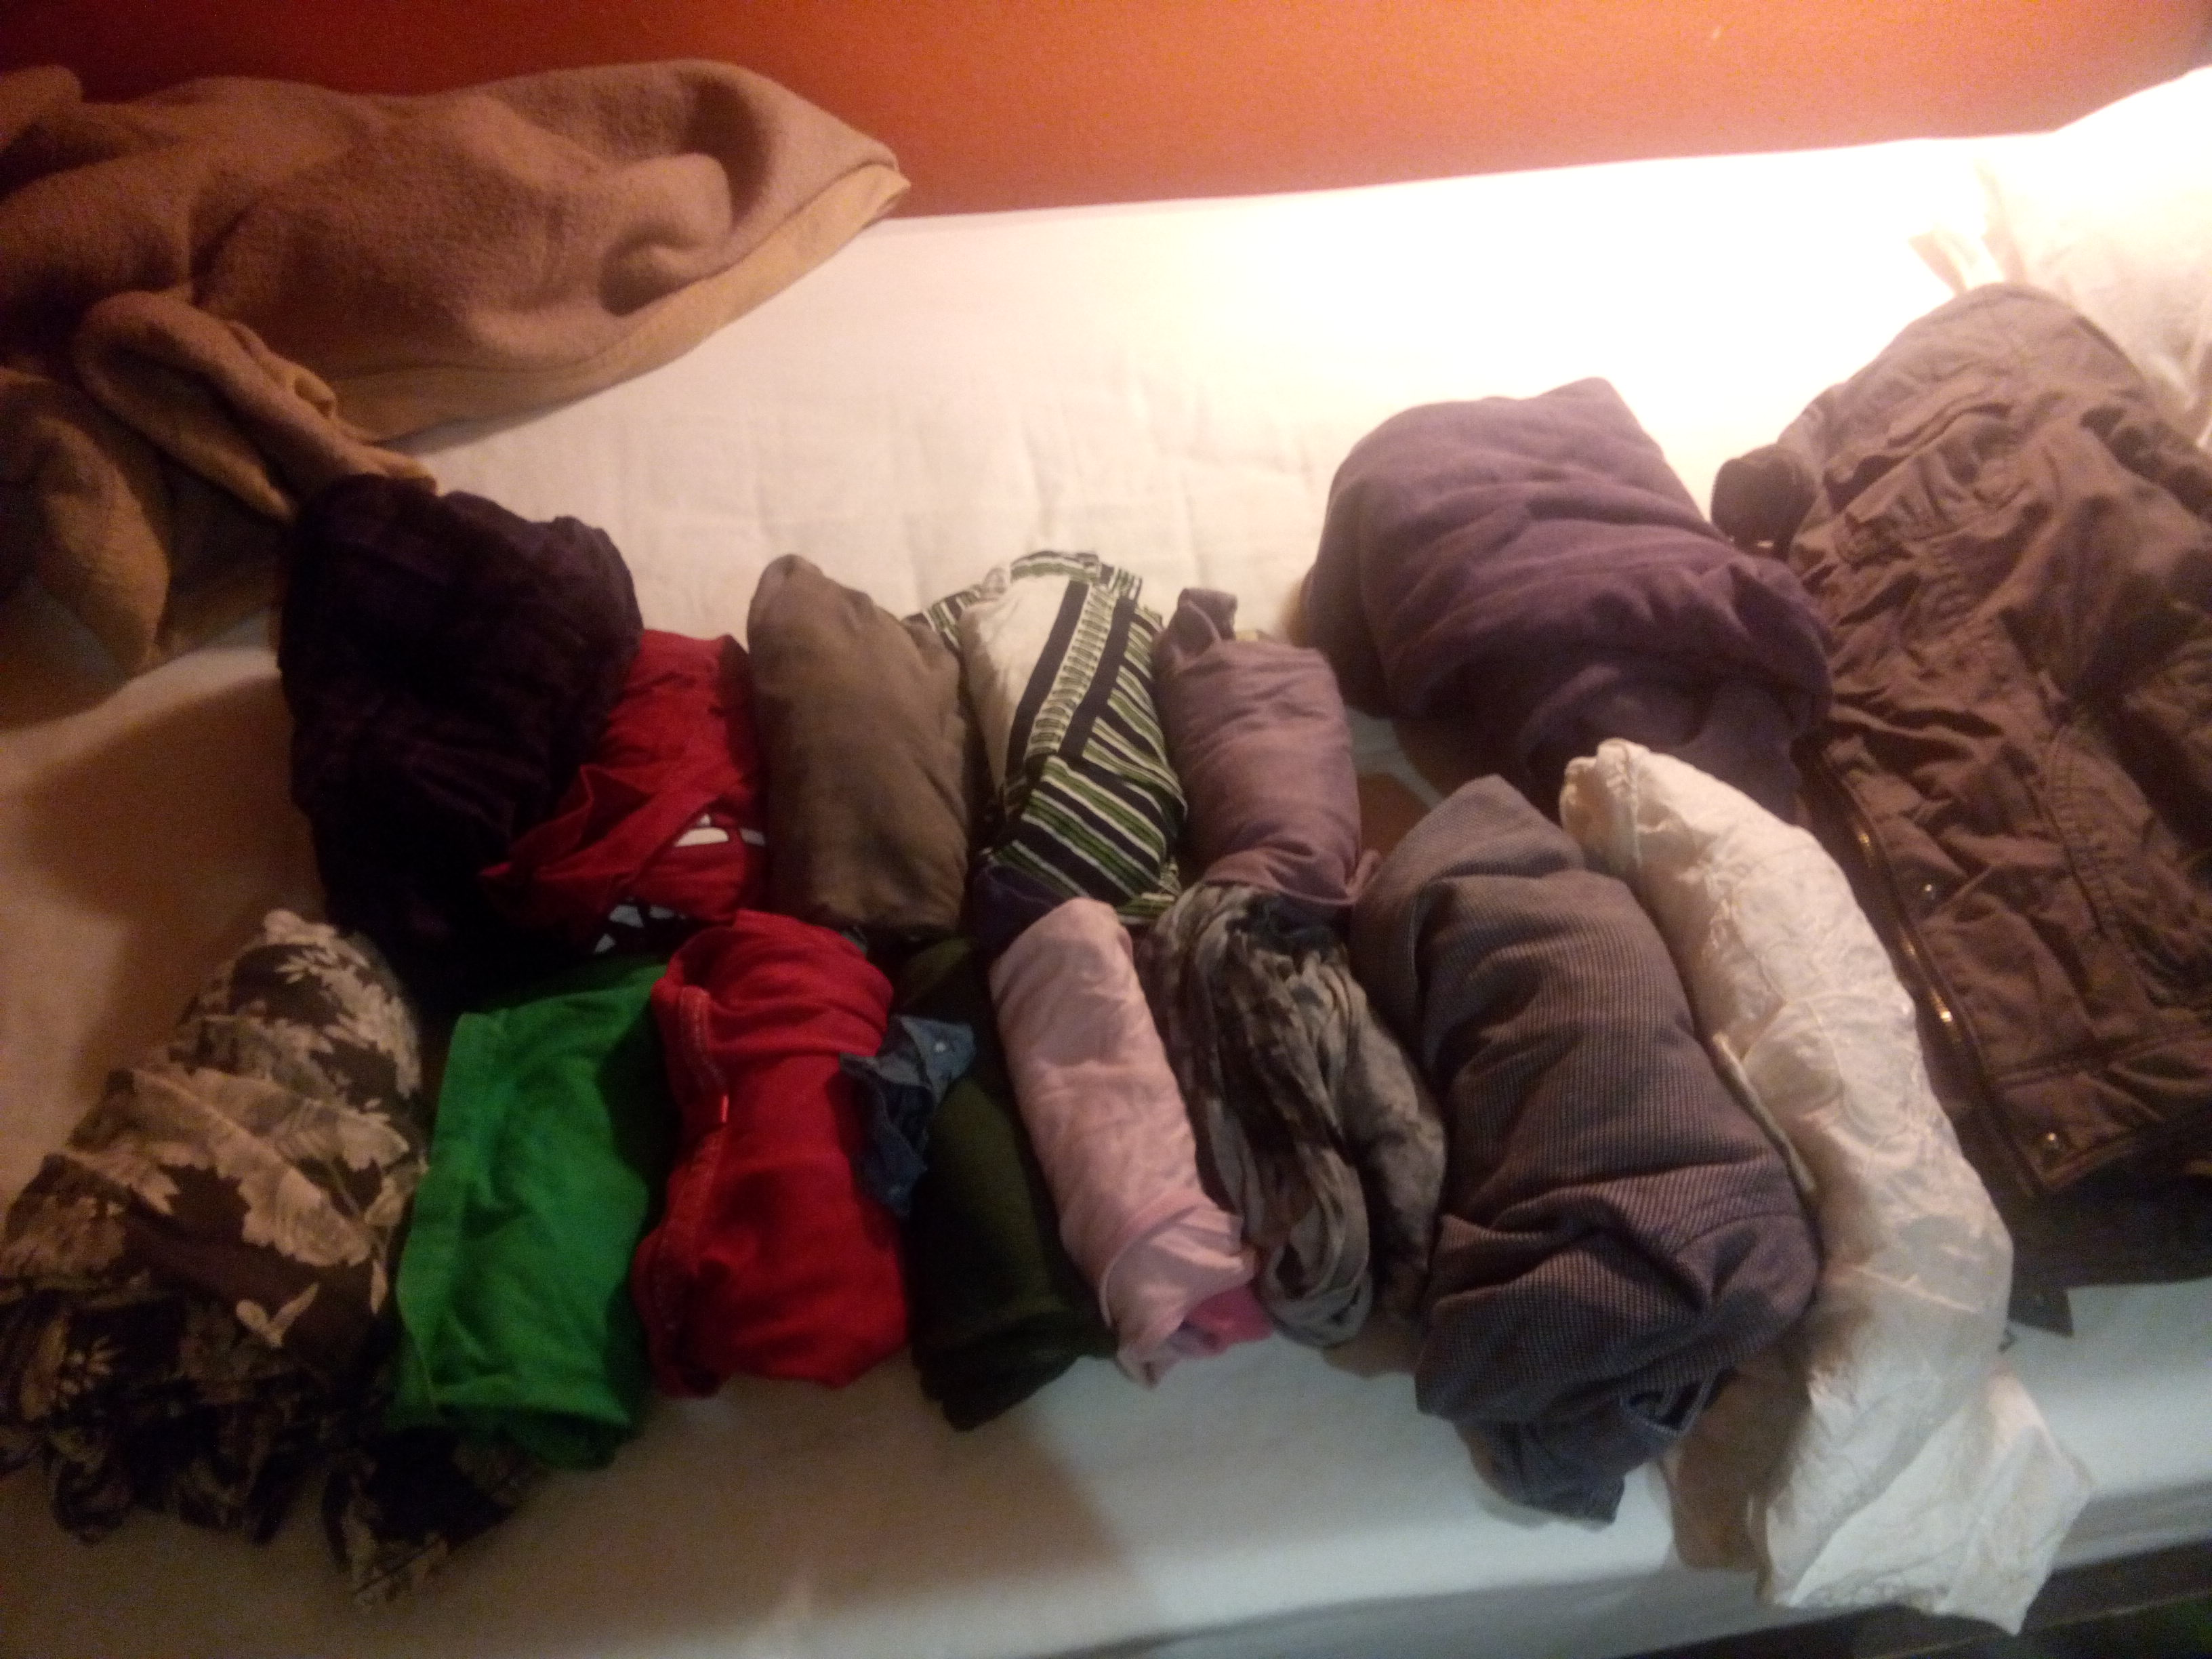 A pile of rolled up clothes on a bed